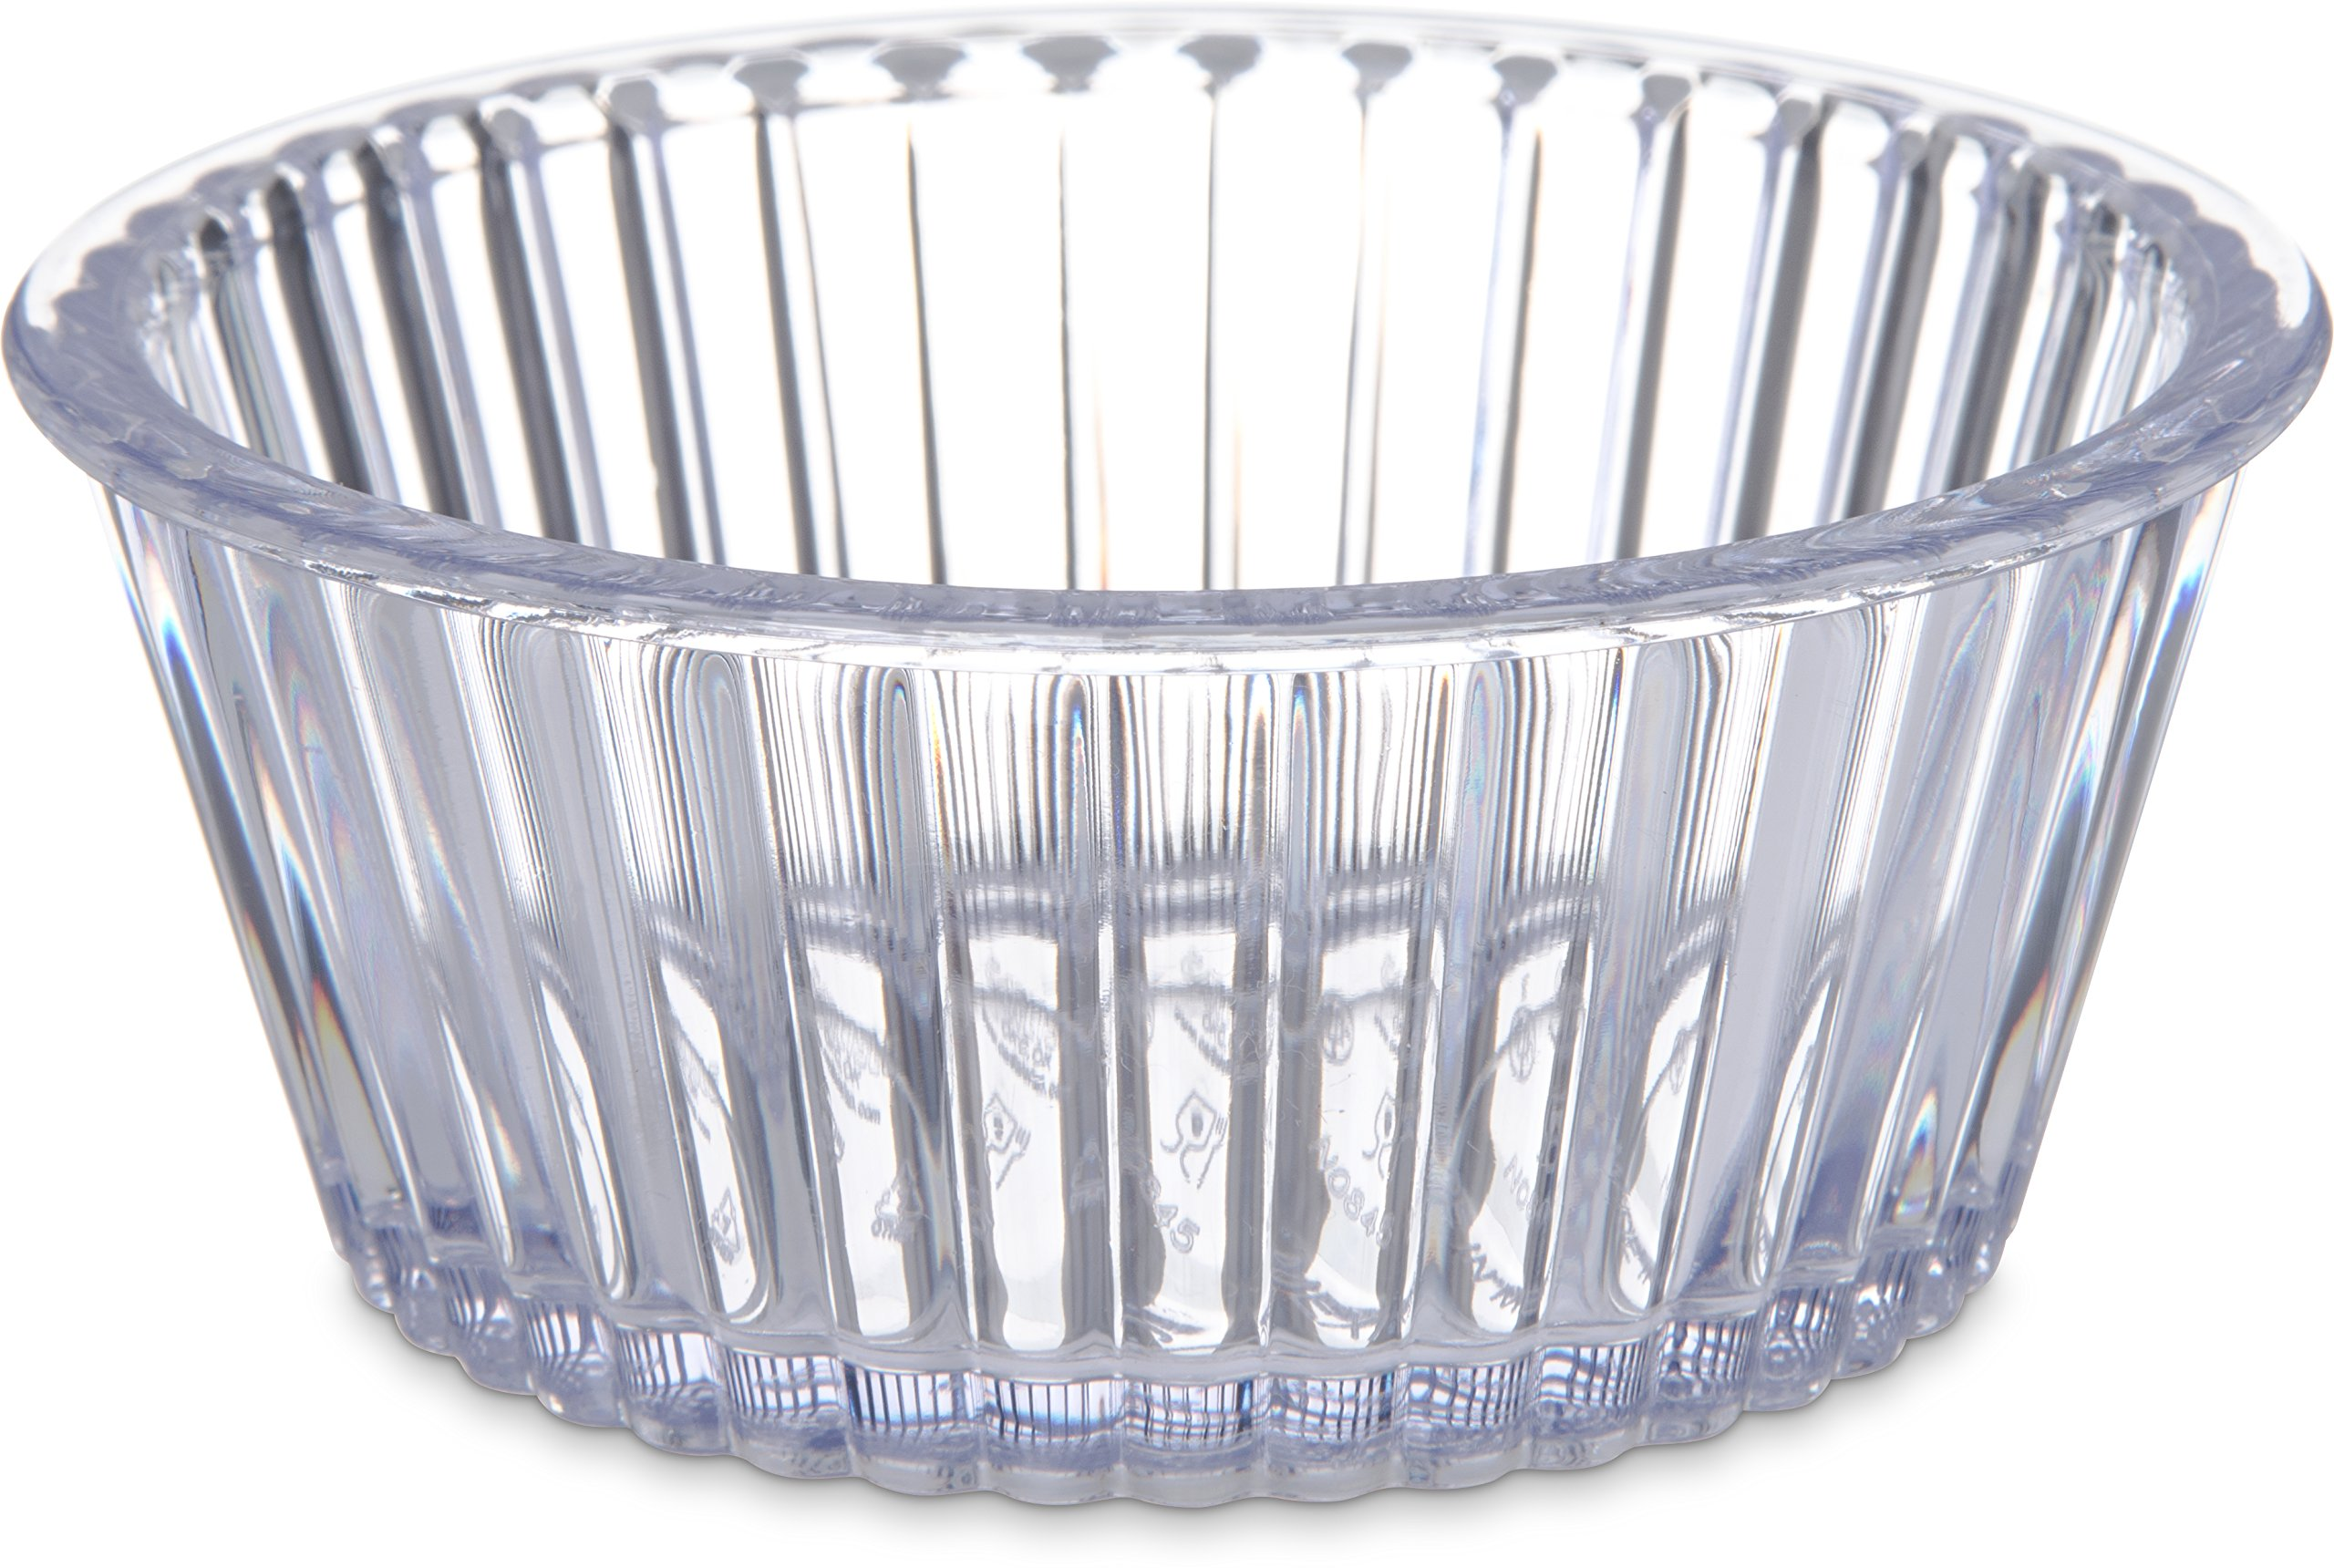 Carlisle 084507 SAN Fluted Ramekin, 4.5-oz. Capacity, 1.50 x 3.50'', Clear (Case of 48)